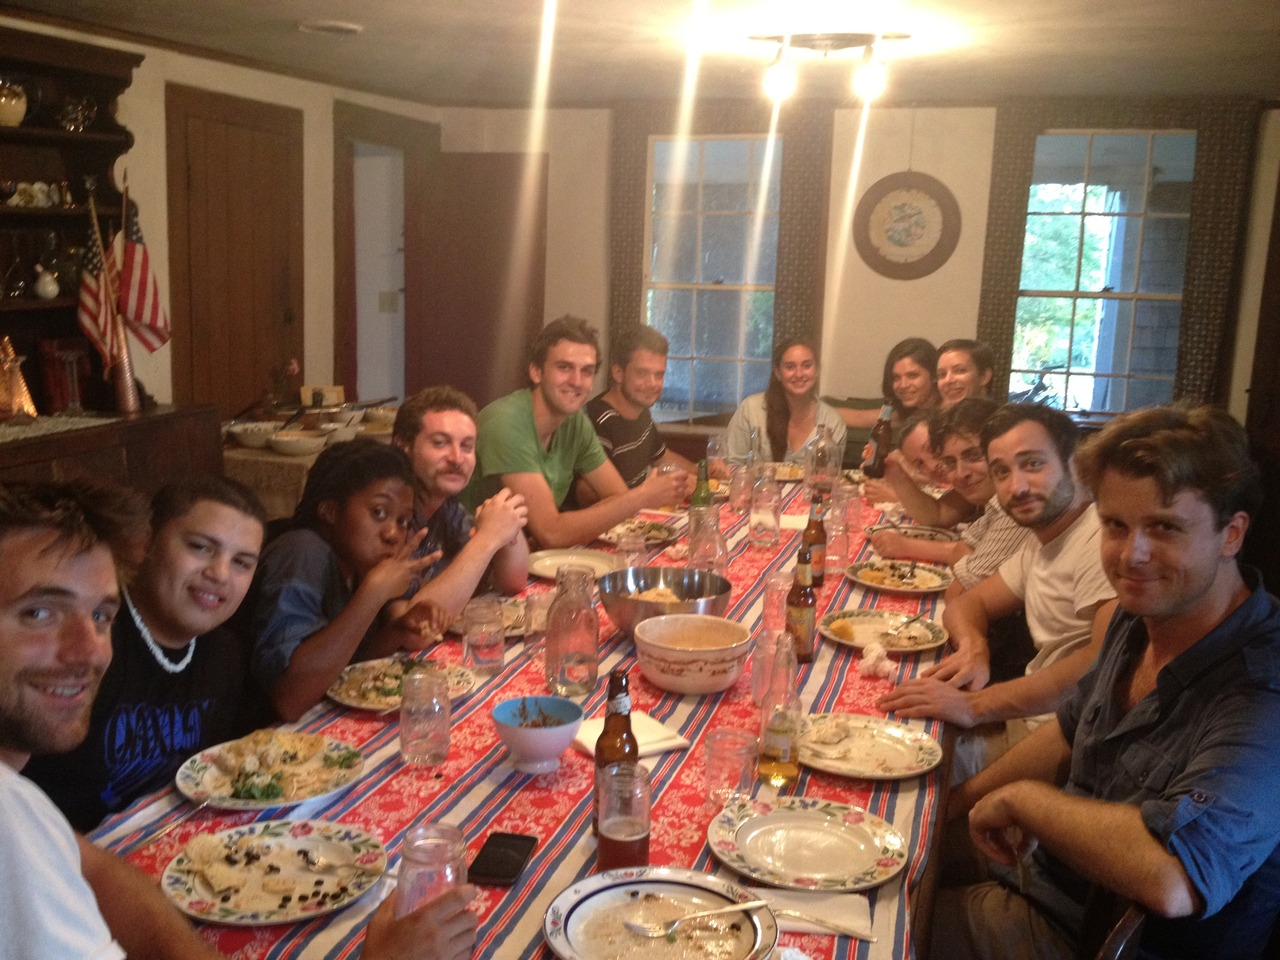 The crew from Woodshed Collective, Playwrights Lucas Kavner and Mat Smart, and the SPACE team enjoy taco night on the farm!